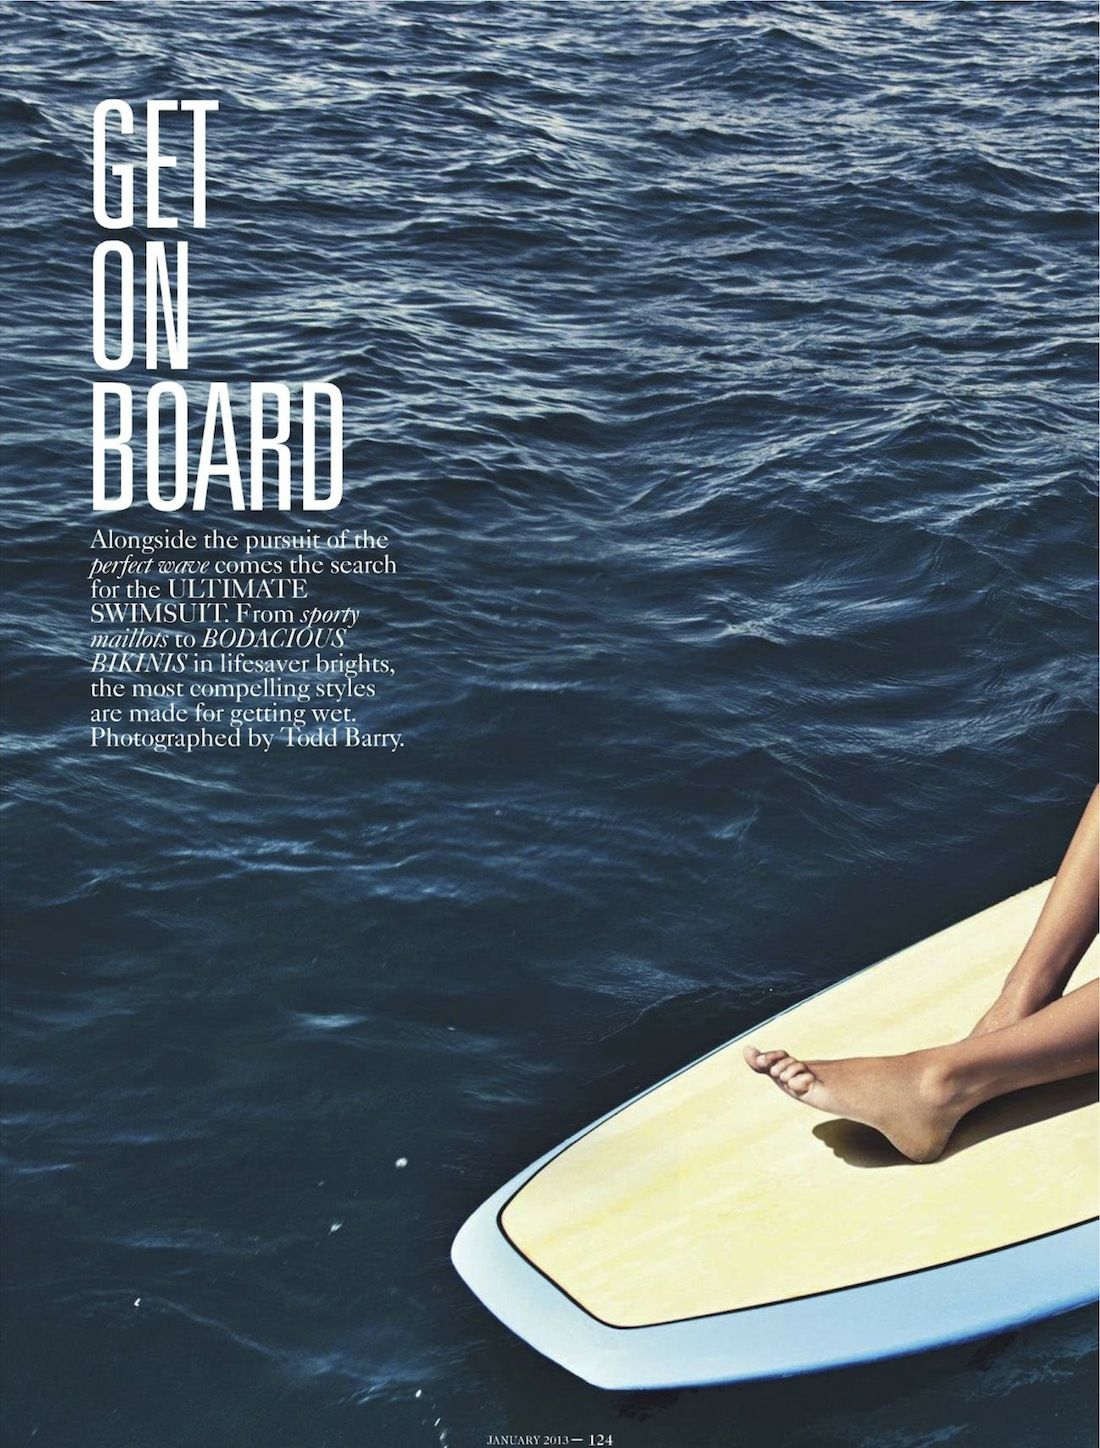 Shanina-Shaik-Todd-Barry-Vogue-Australia-January-2013-1